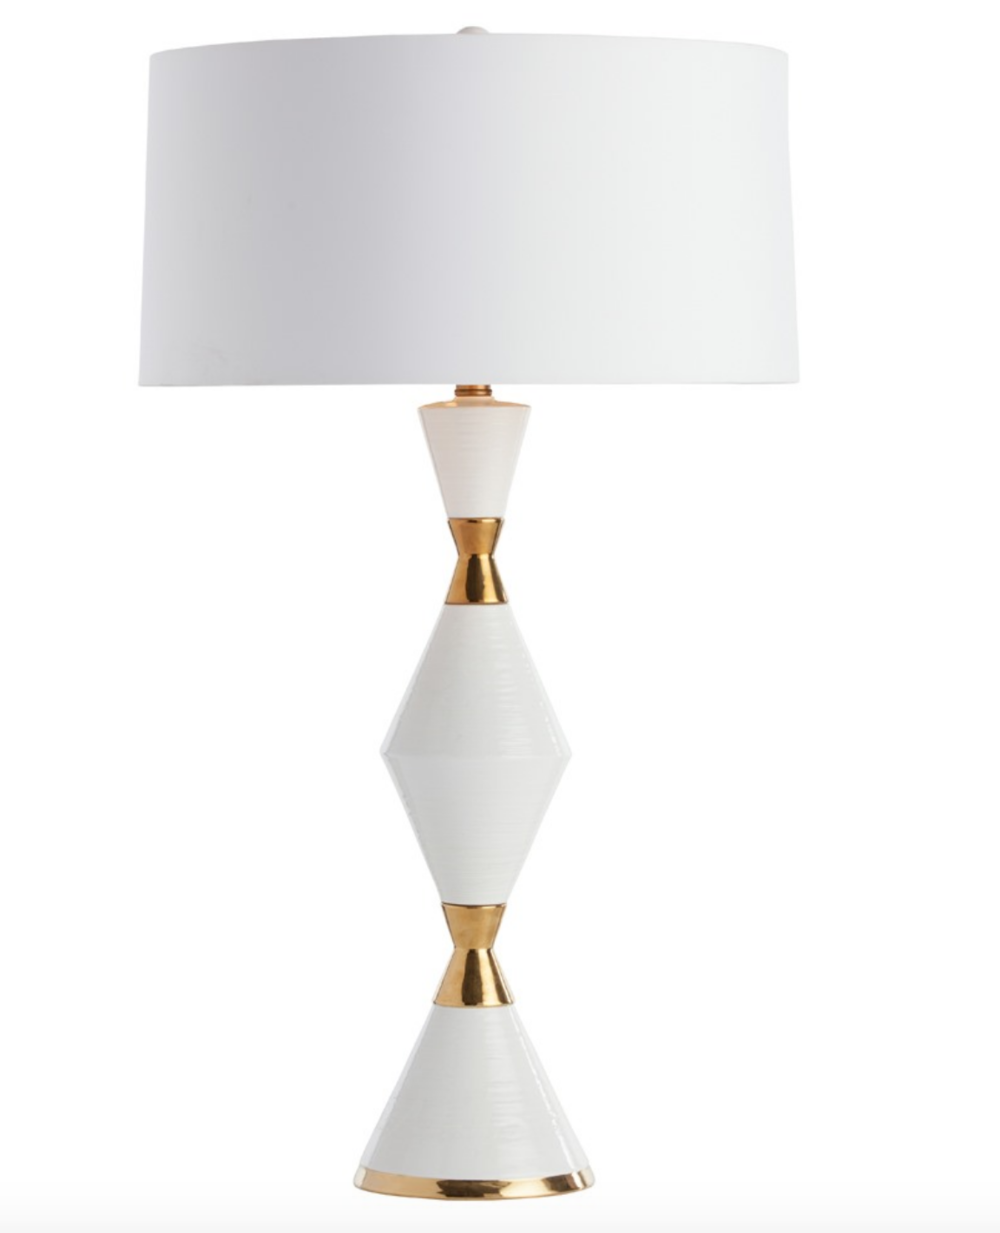 Adair Lamp - The gold cinch waist detail on this striking white gloss ceramic lamp, makes it an ideal statement piece. The white microfiber drum shade is lined in gold foil to continue the theme and up the glamour quotient. Matching ceramic finial.Overall: 18